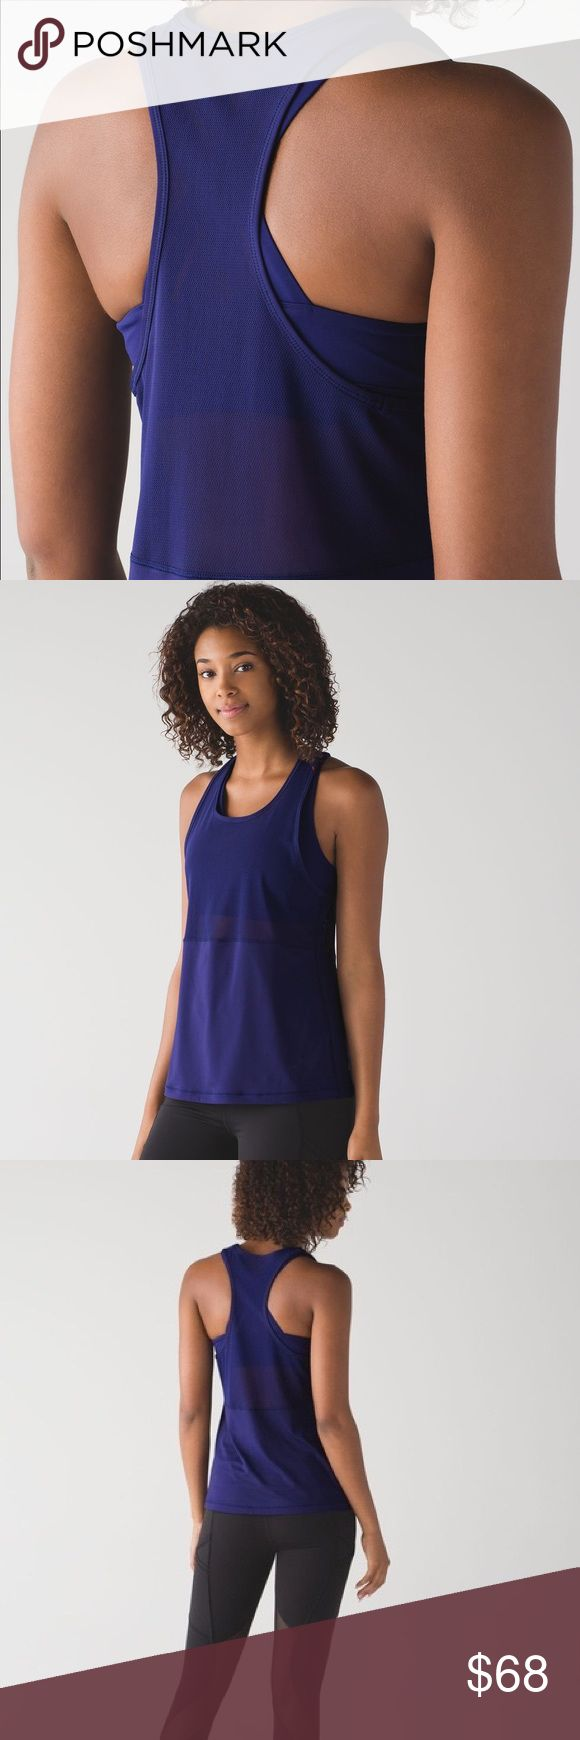 Lululemon Fast As Light 2-In-1 Tank Size: 4 NEW All ventilation all the time—this lightweight tank with built-in bra was designed for your sweatiest workouts. Light Luxtreme® Sweat-wicking Light Luxtreme® fabric body is four-way stretch and feels cool      sweat-wicking     four-way stretch     fits like a second skin     cool     smooth handfeel     lightweight  Mesh Mesh fabric panels help keep you cool      breathable     lightweight     sweat-wicking  BRAND NEW - TAGS STILL ATTACHED…